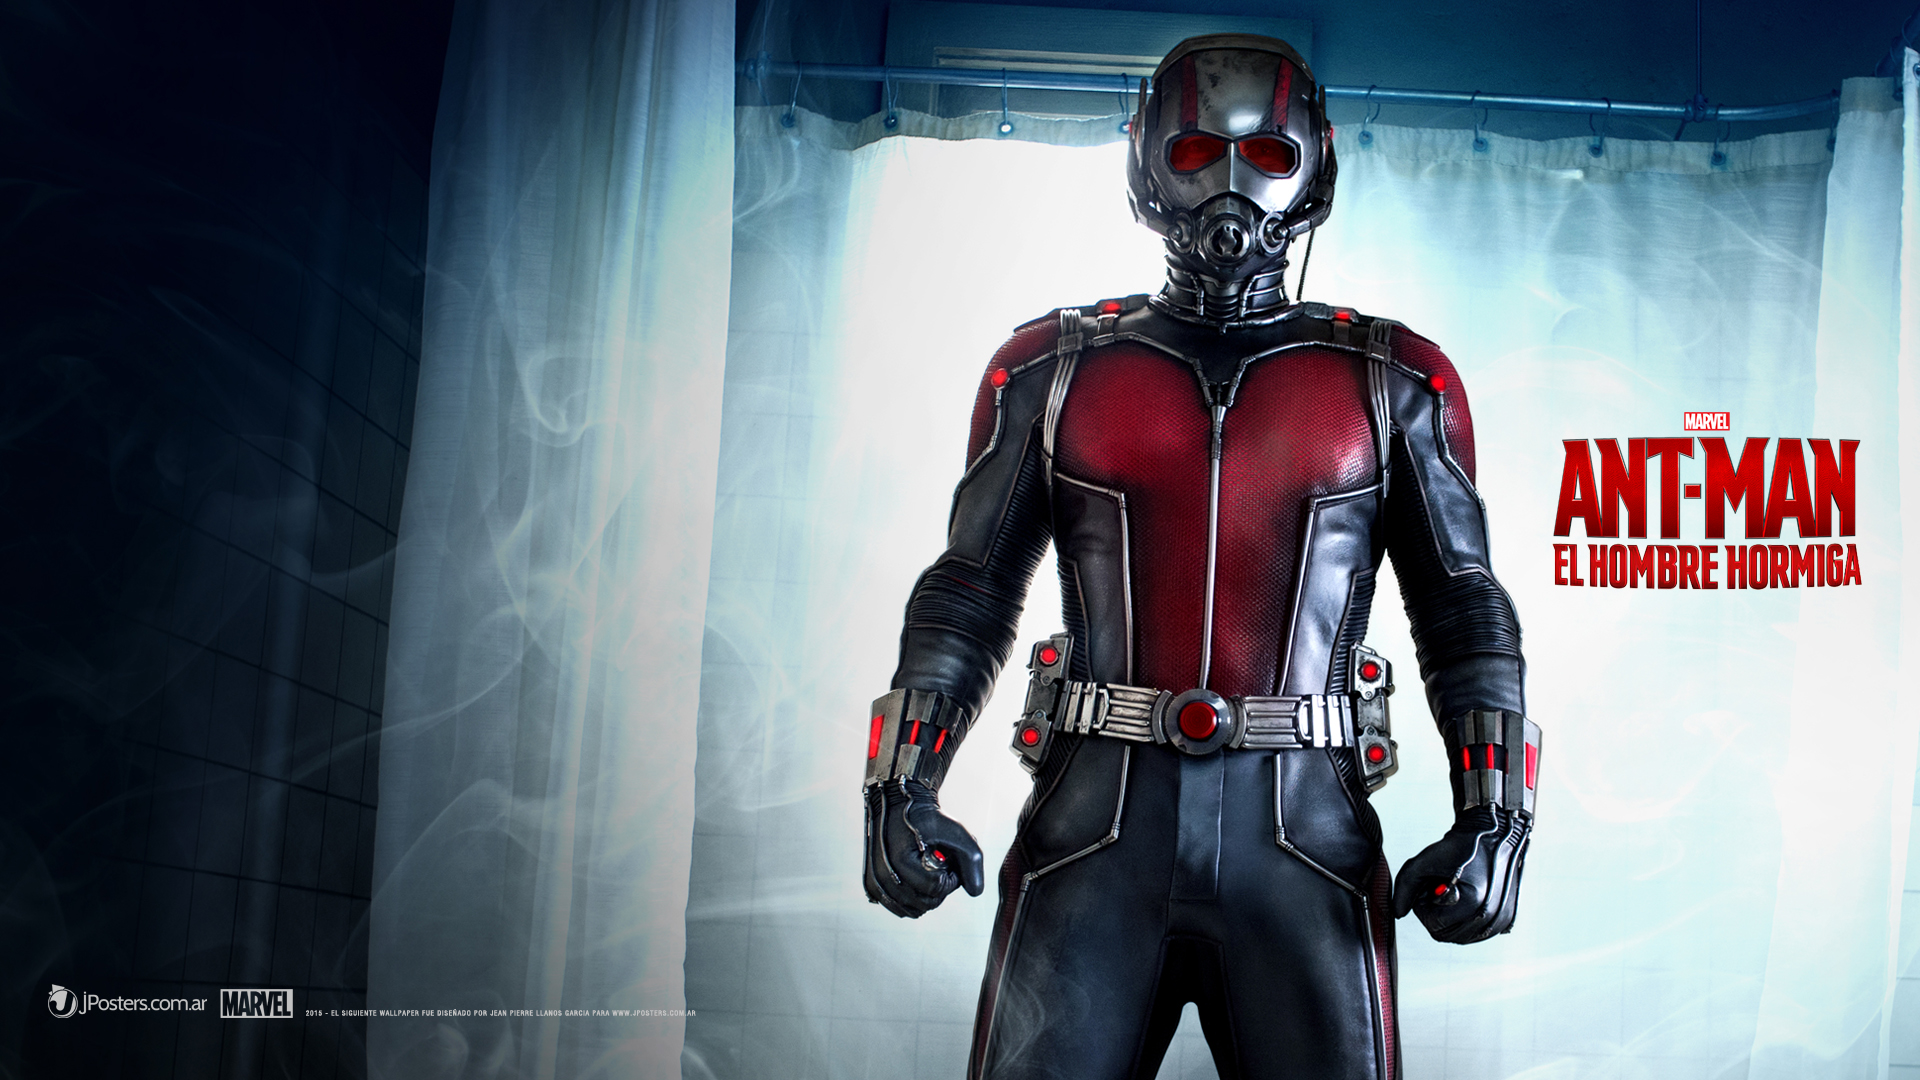 Him Iphone Wallpaper Ant Man Hd Wallpapers For Desktop Download